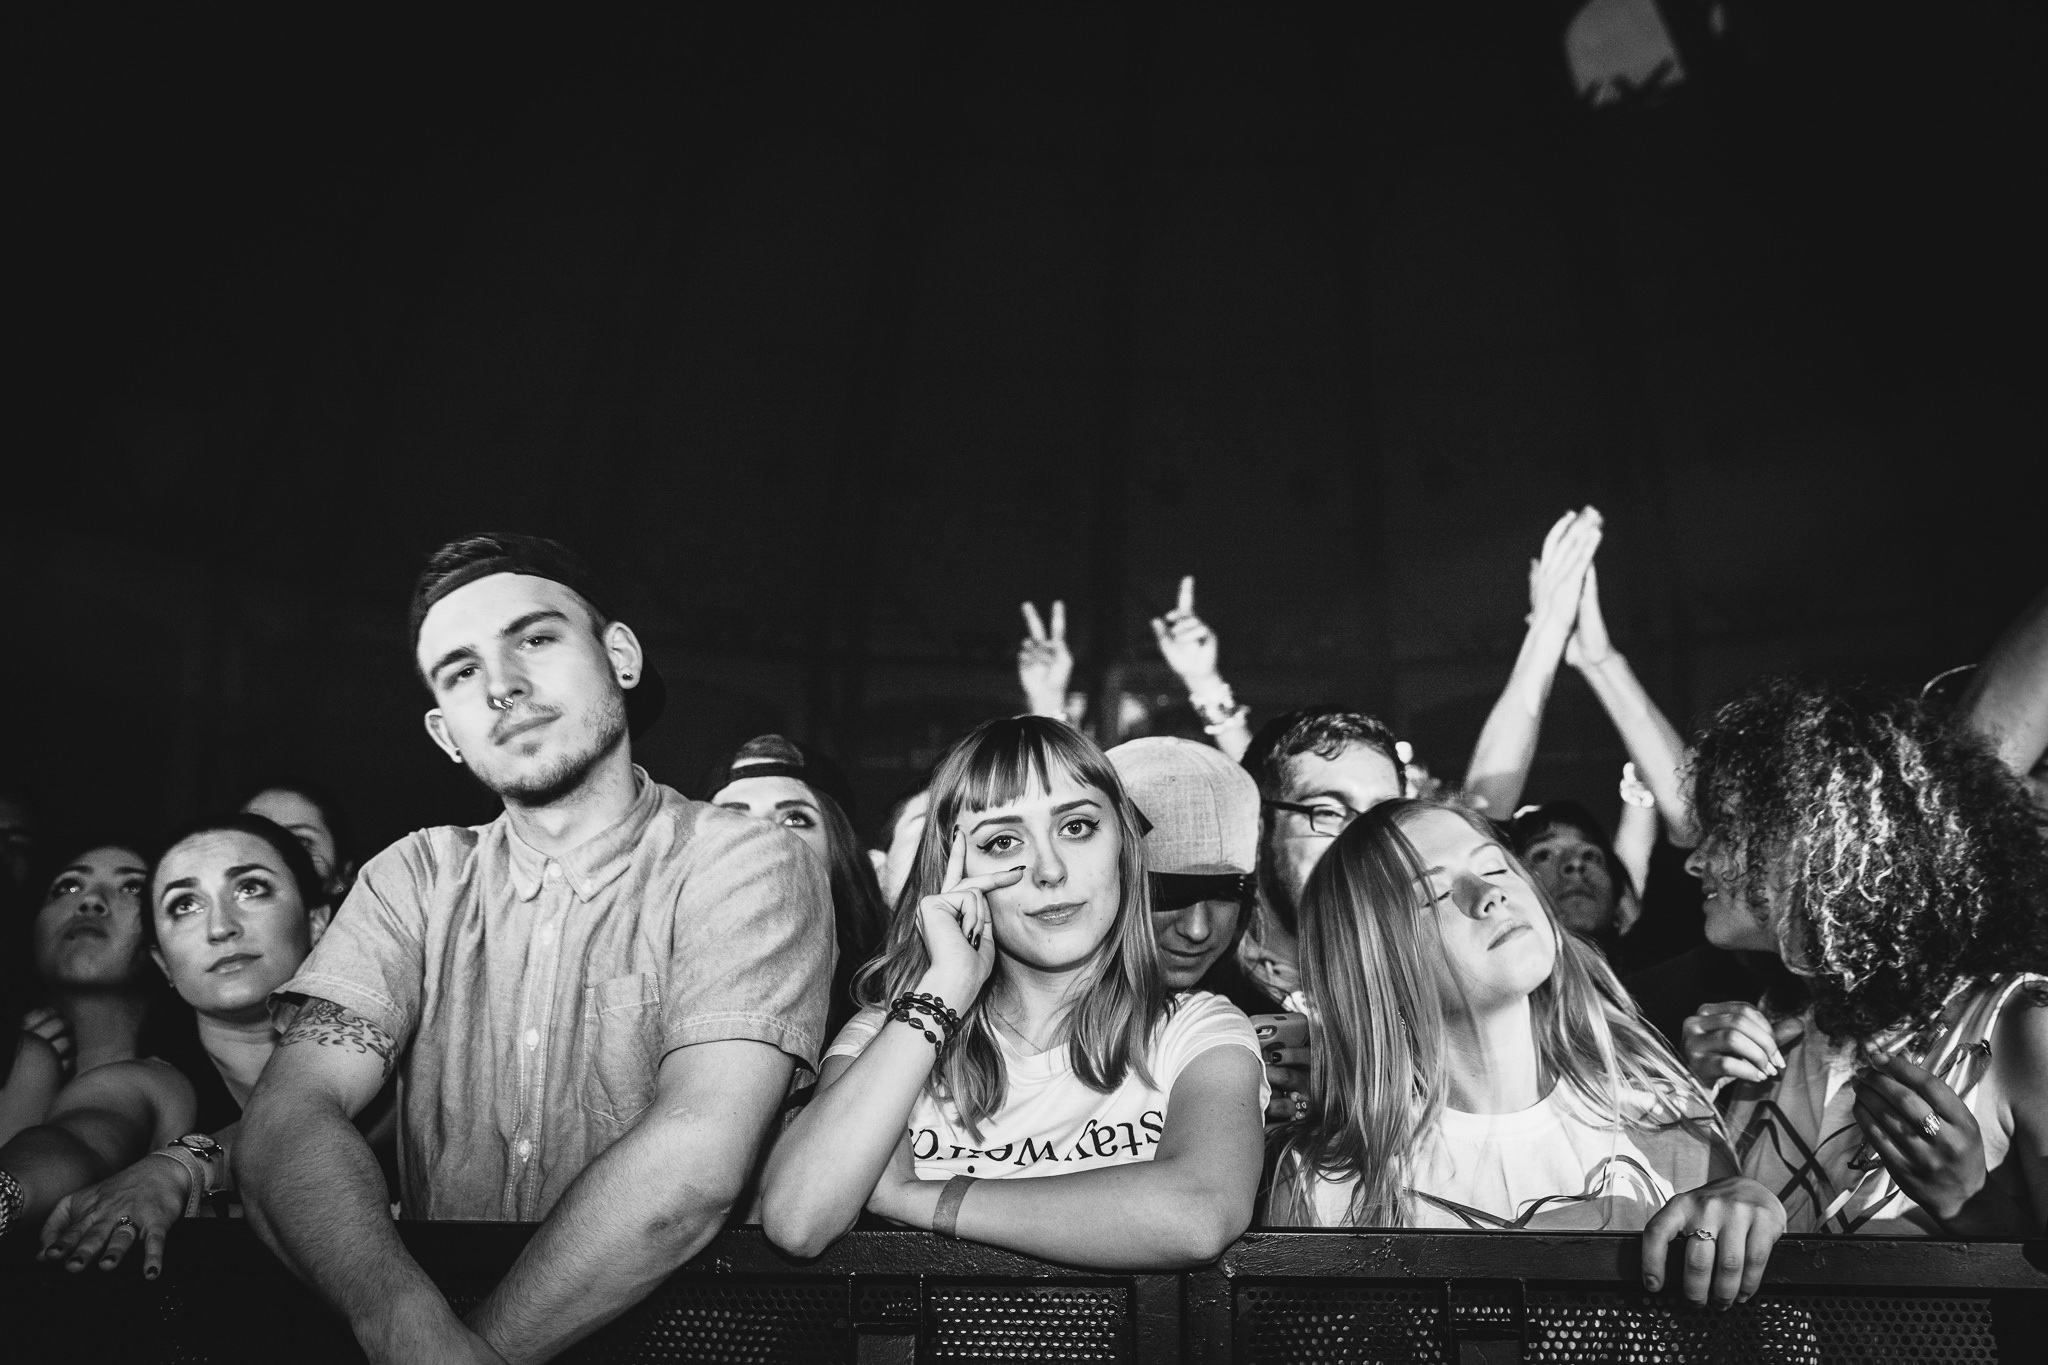 06-crowds-little-green-eyes-above-and-beyond-chicago.jpg